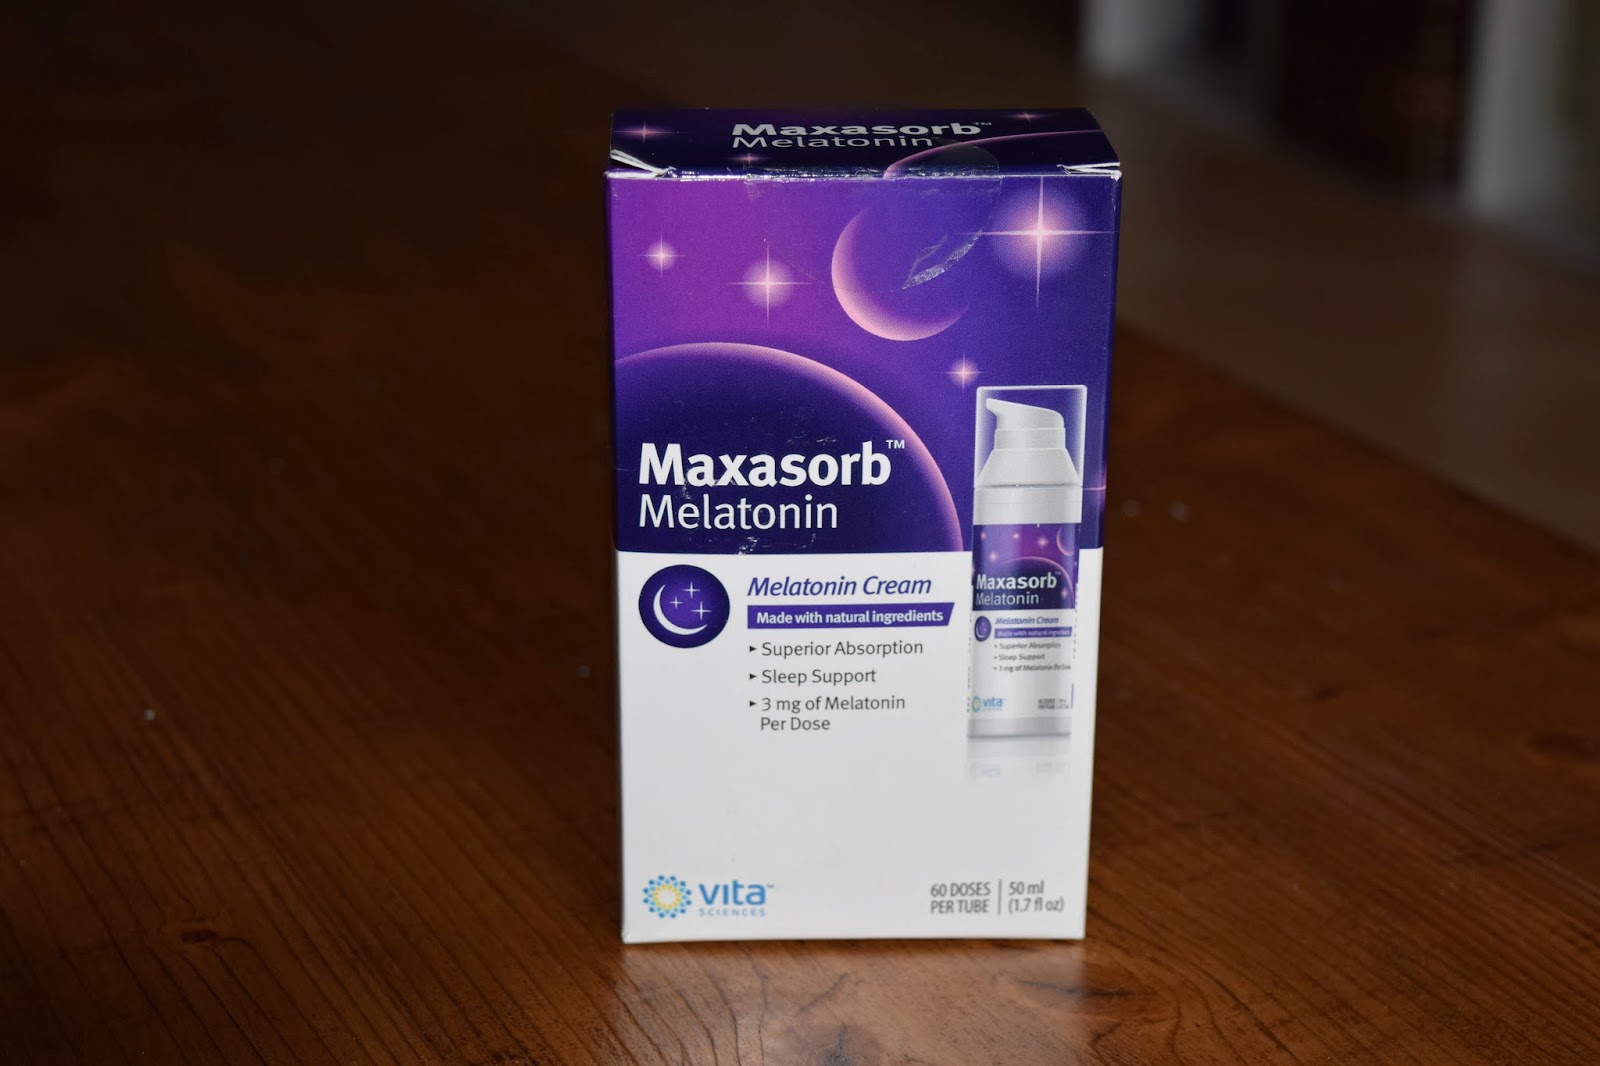 melatonin cream, vita sciences, maxasorb melatonin